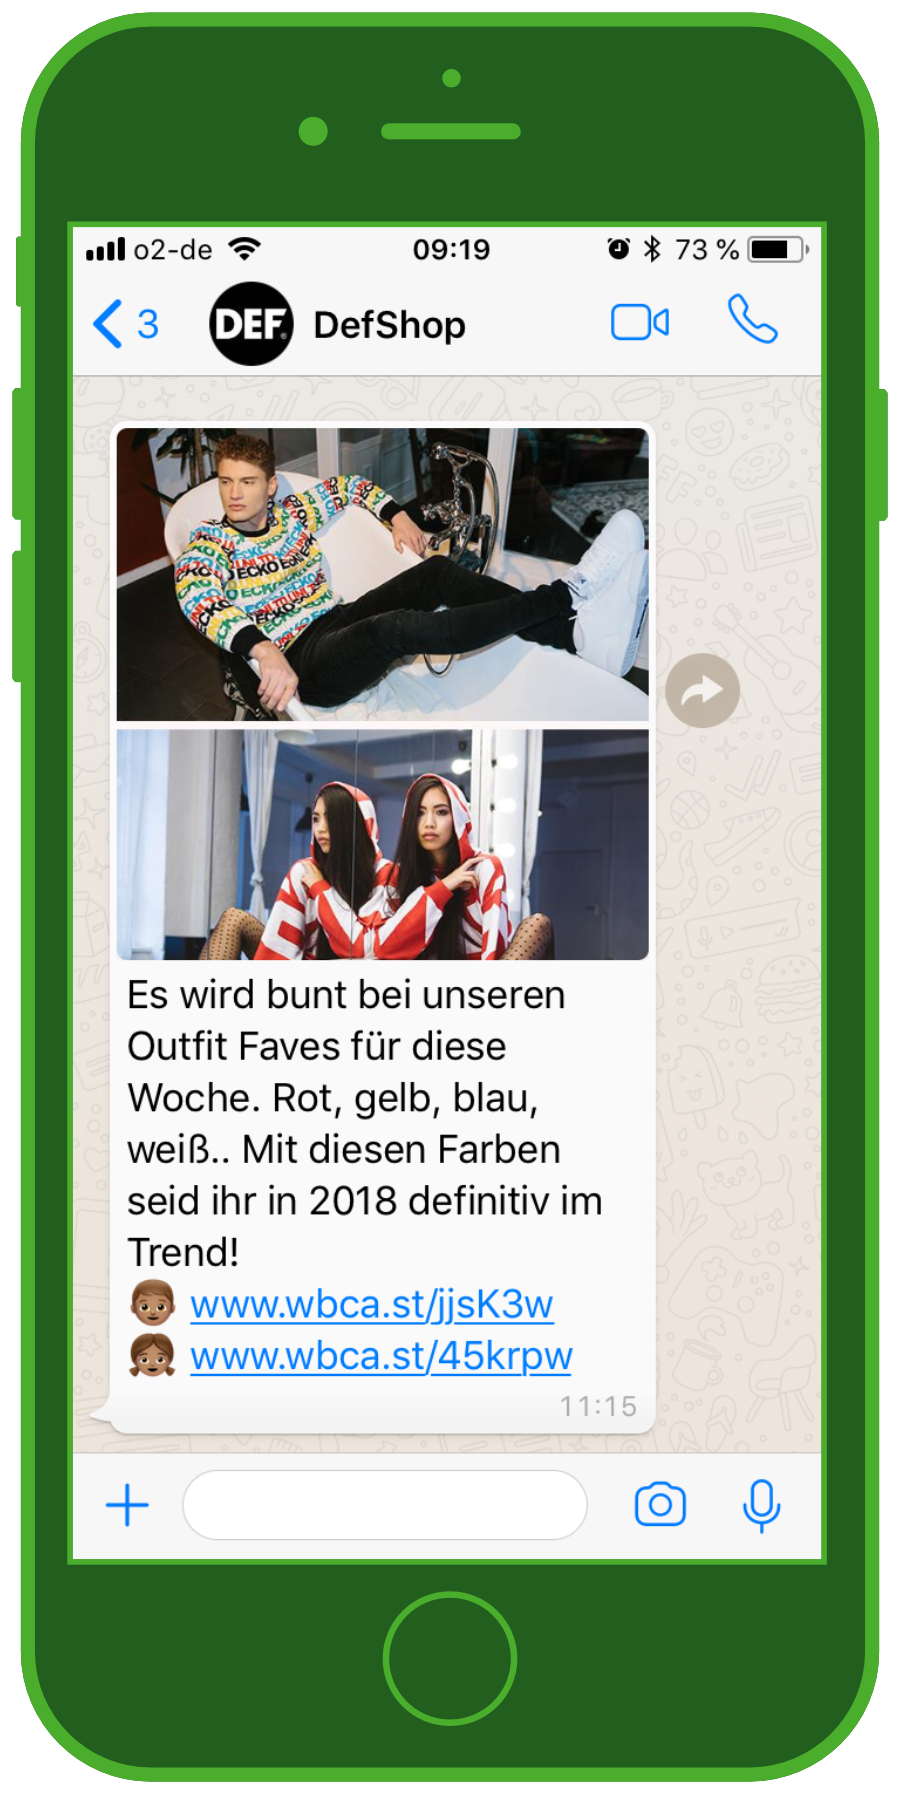 device-fashion-defshop-whatsapp-screenshot